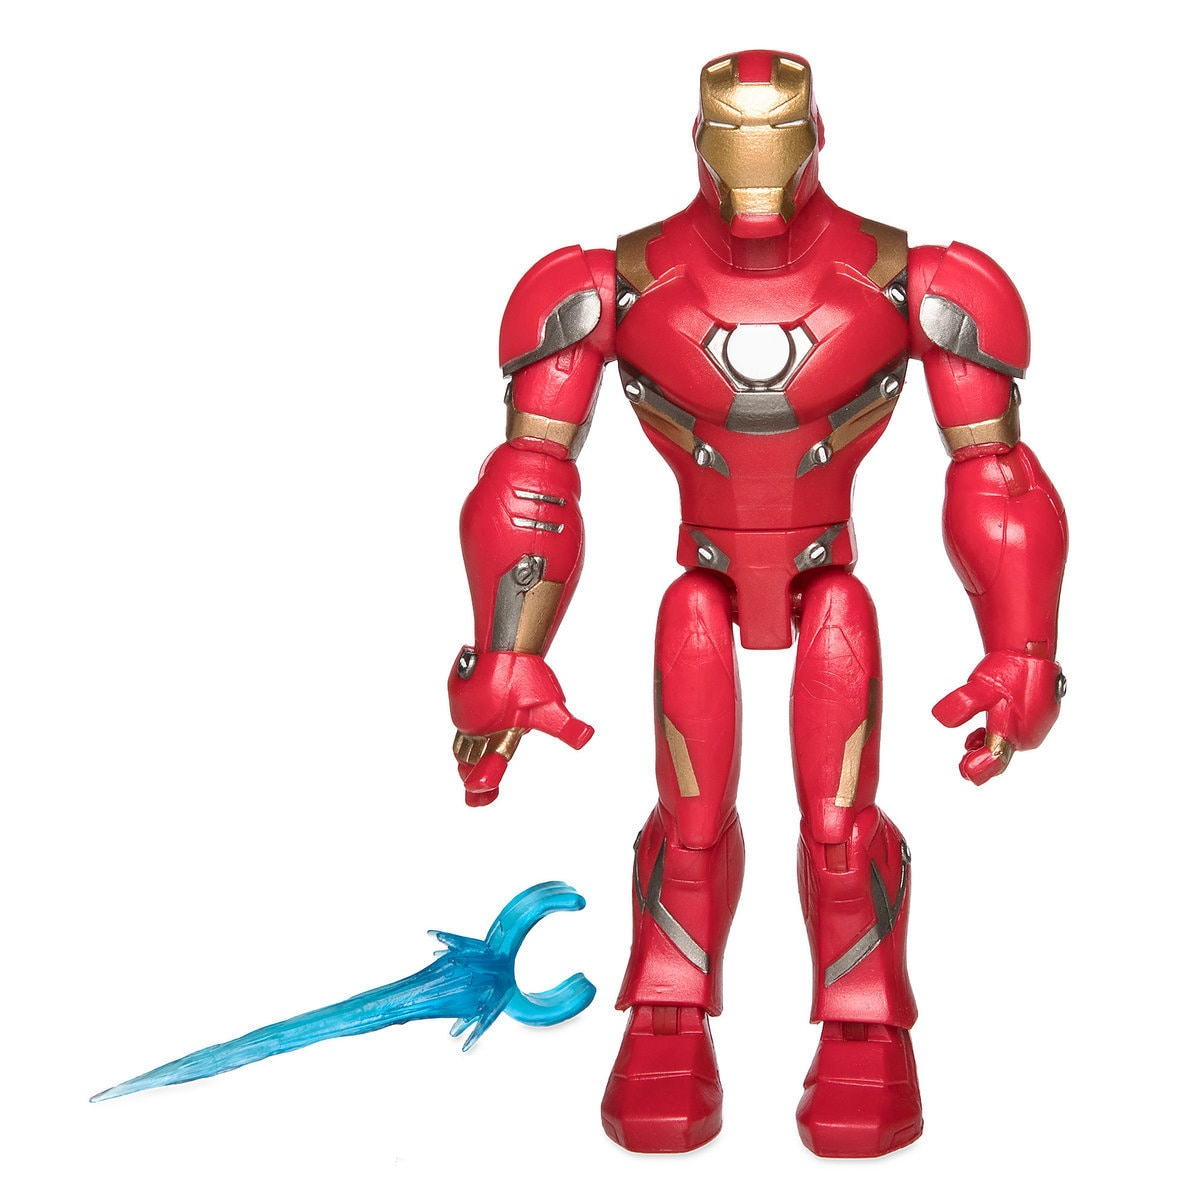 Product Image of Iron Man Action Figure - Marvel Toybox # 1